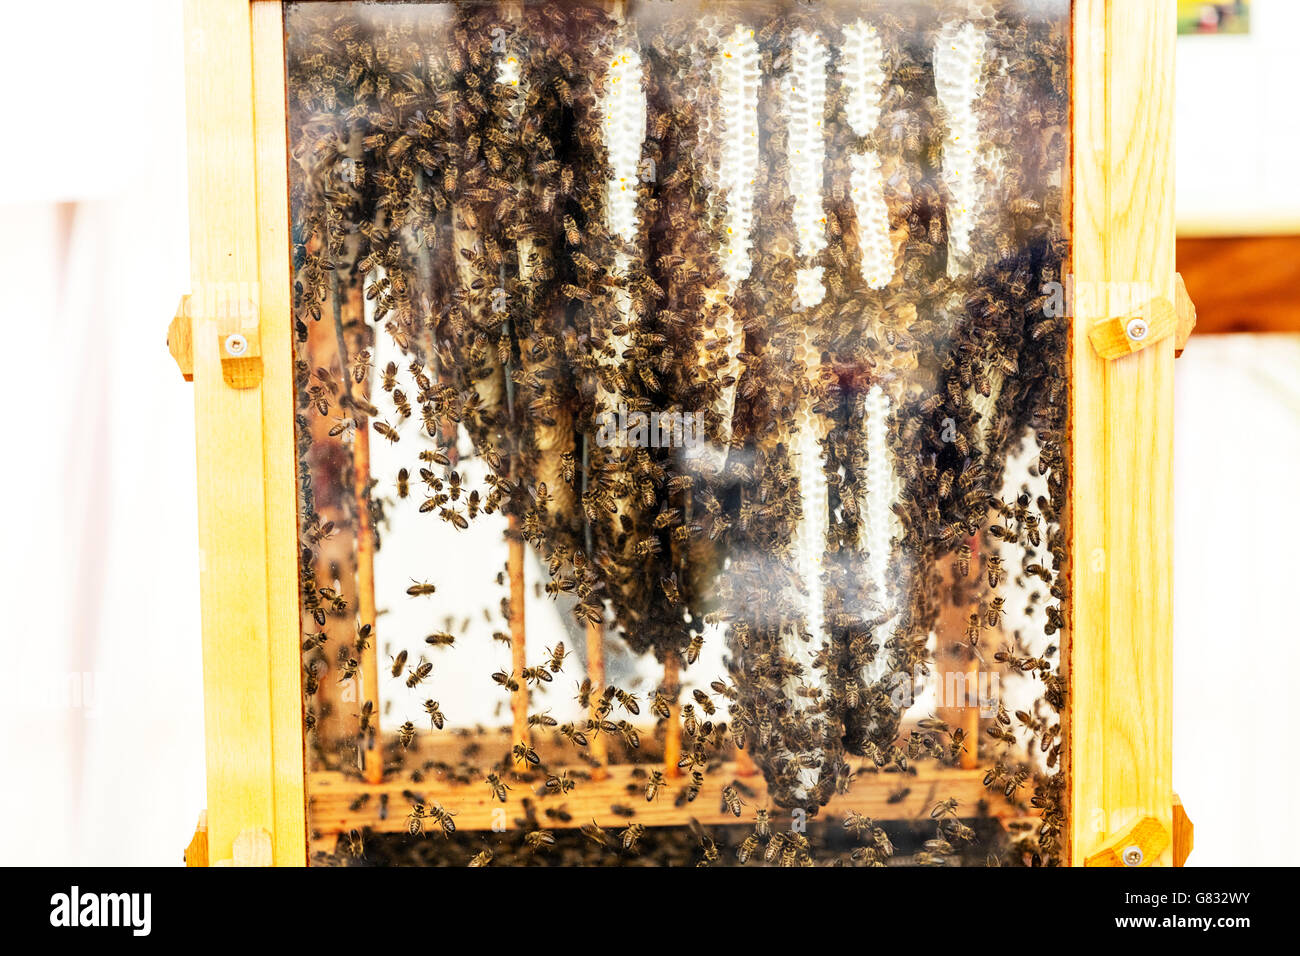 Apiary bee hive inside bees working worker bees making honey honeycomb interior UK England GB - Stock Image